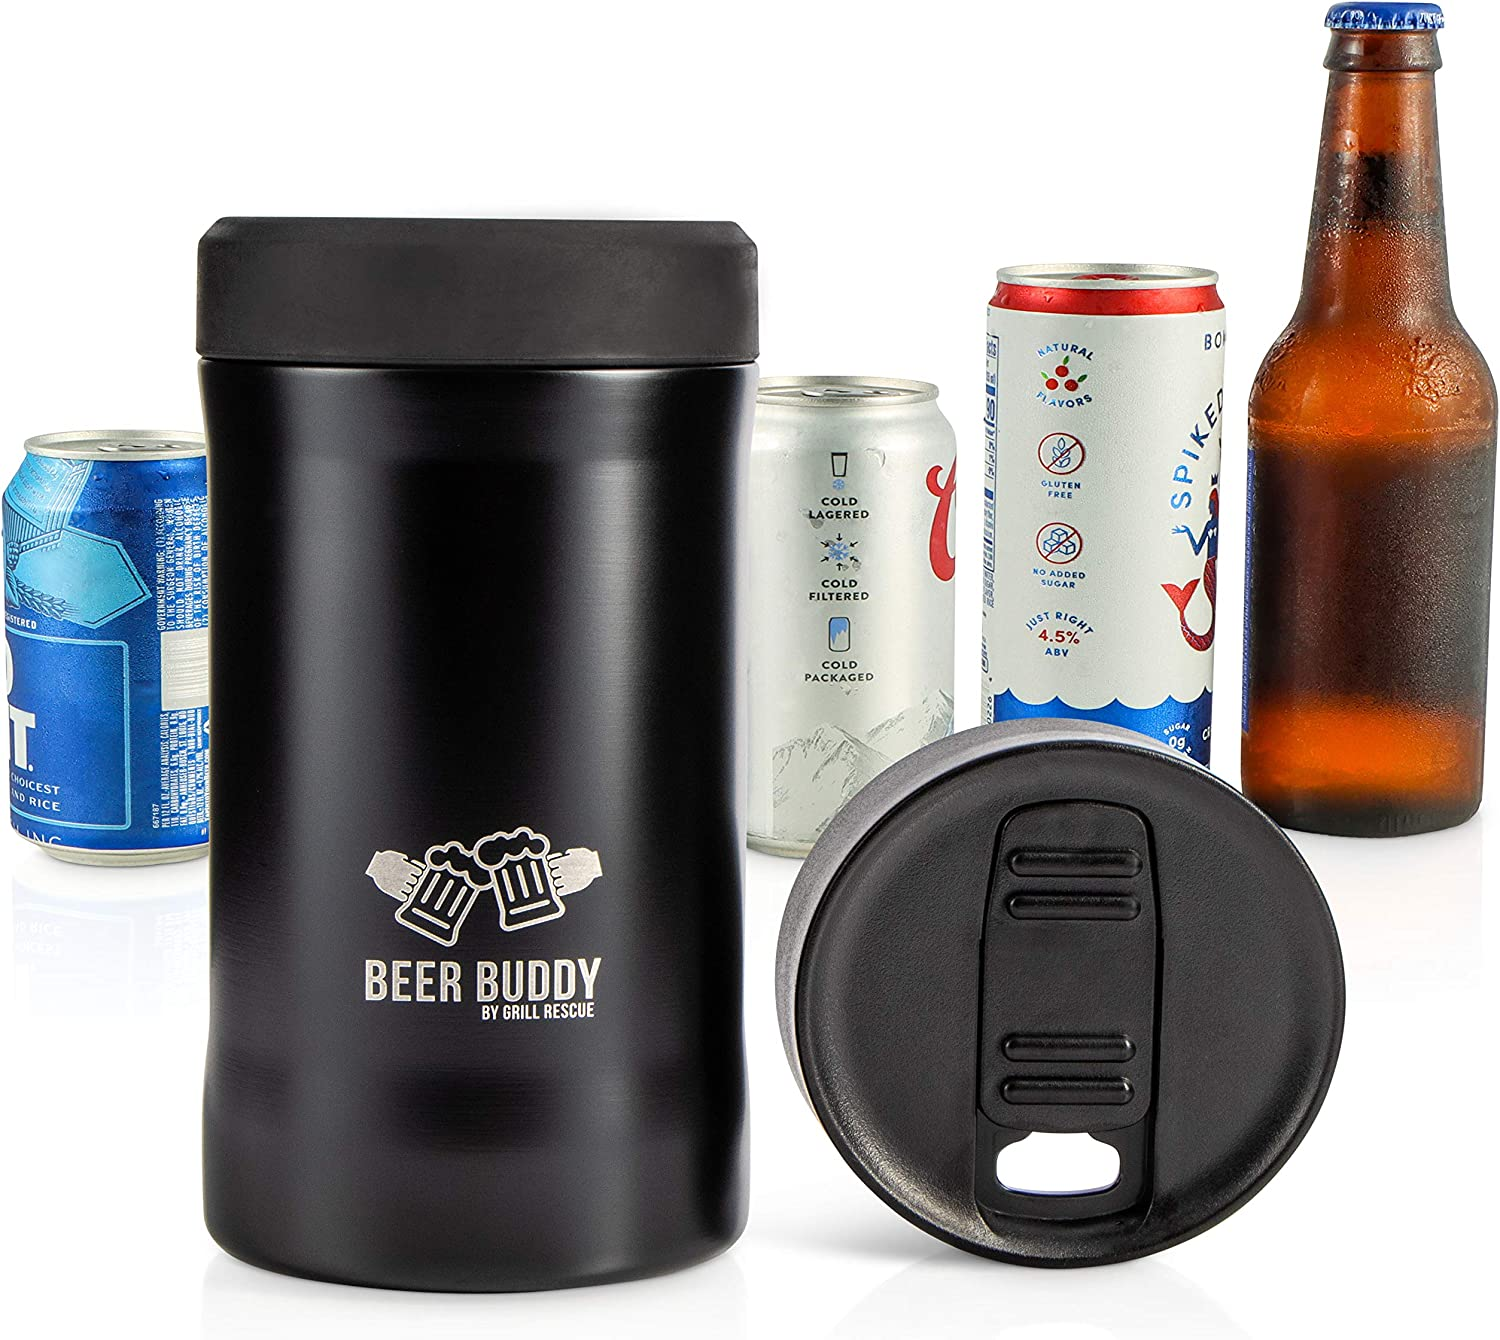 Beer Buddy​ Insulated Can Holder – Vacuum-Sealed Stainless Steel – Beer Bottle Insulator for Cold Beverages – Thermos Beer Cooler ​Suited for Any Size​ Drink - One Size Fits All (Matte Black)